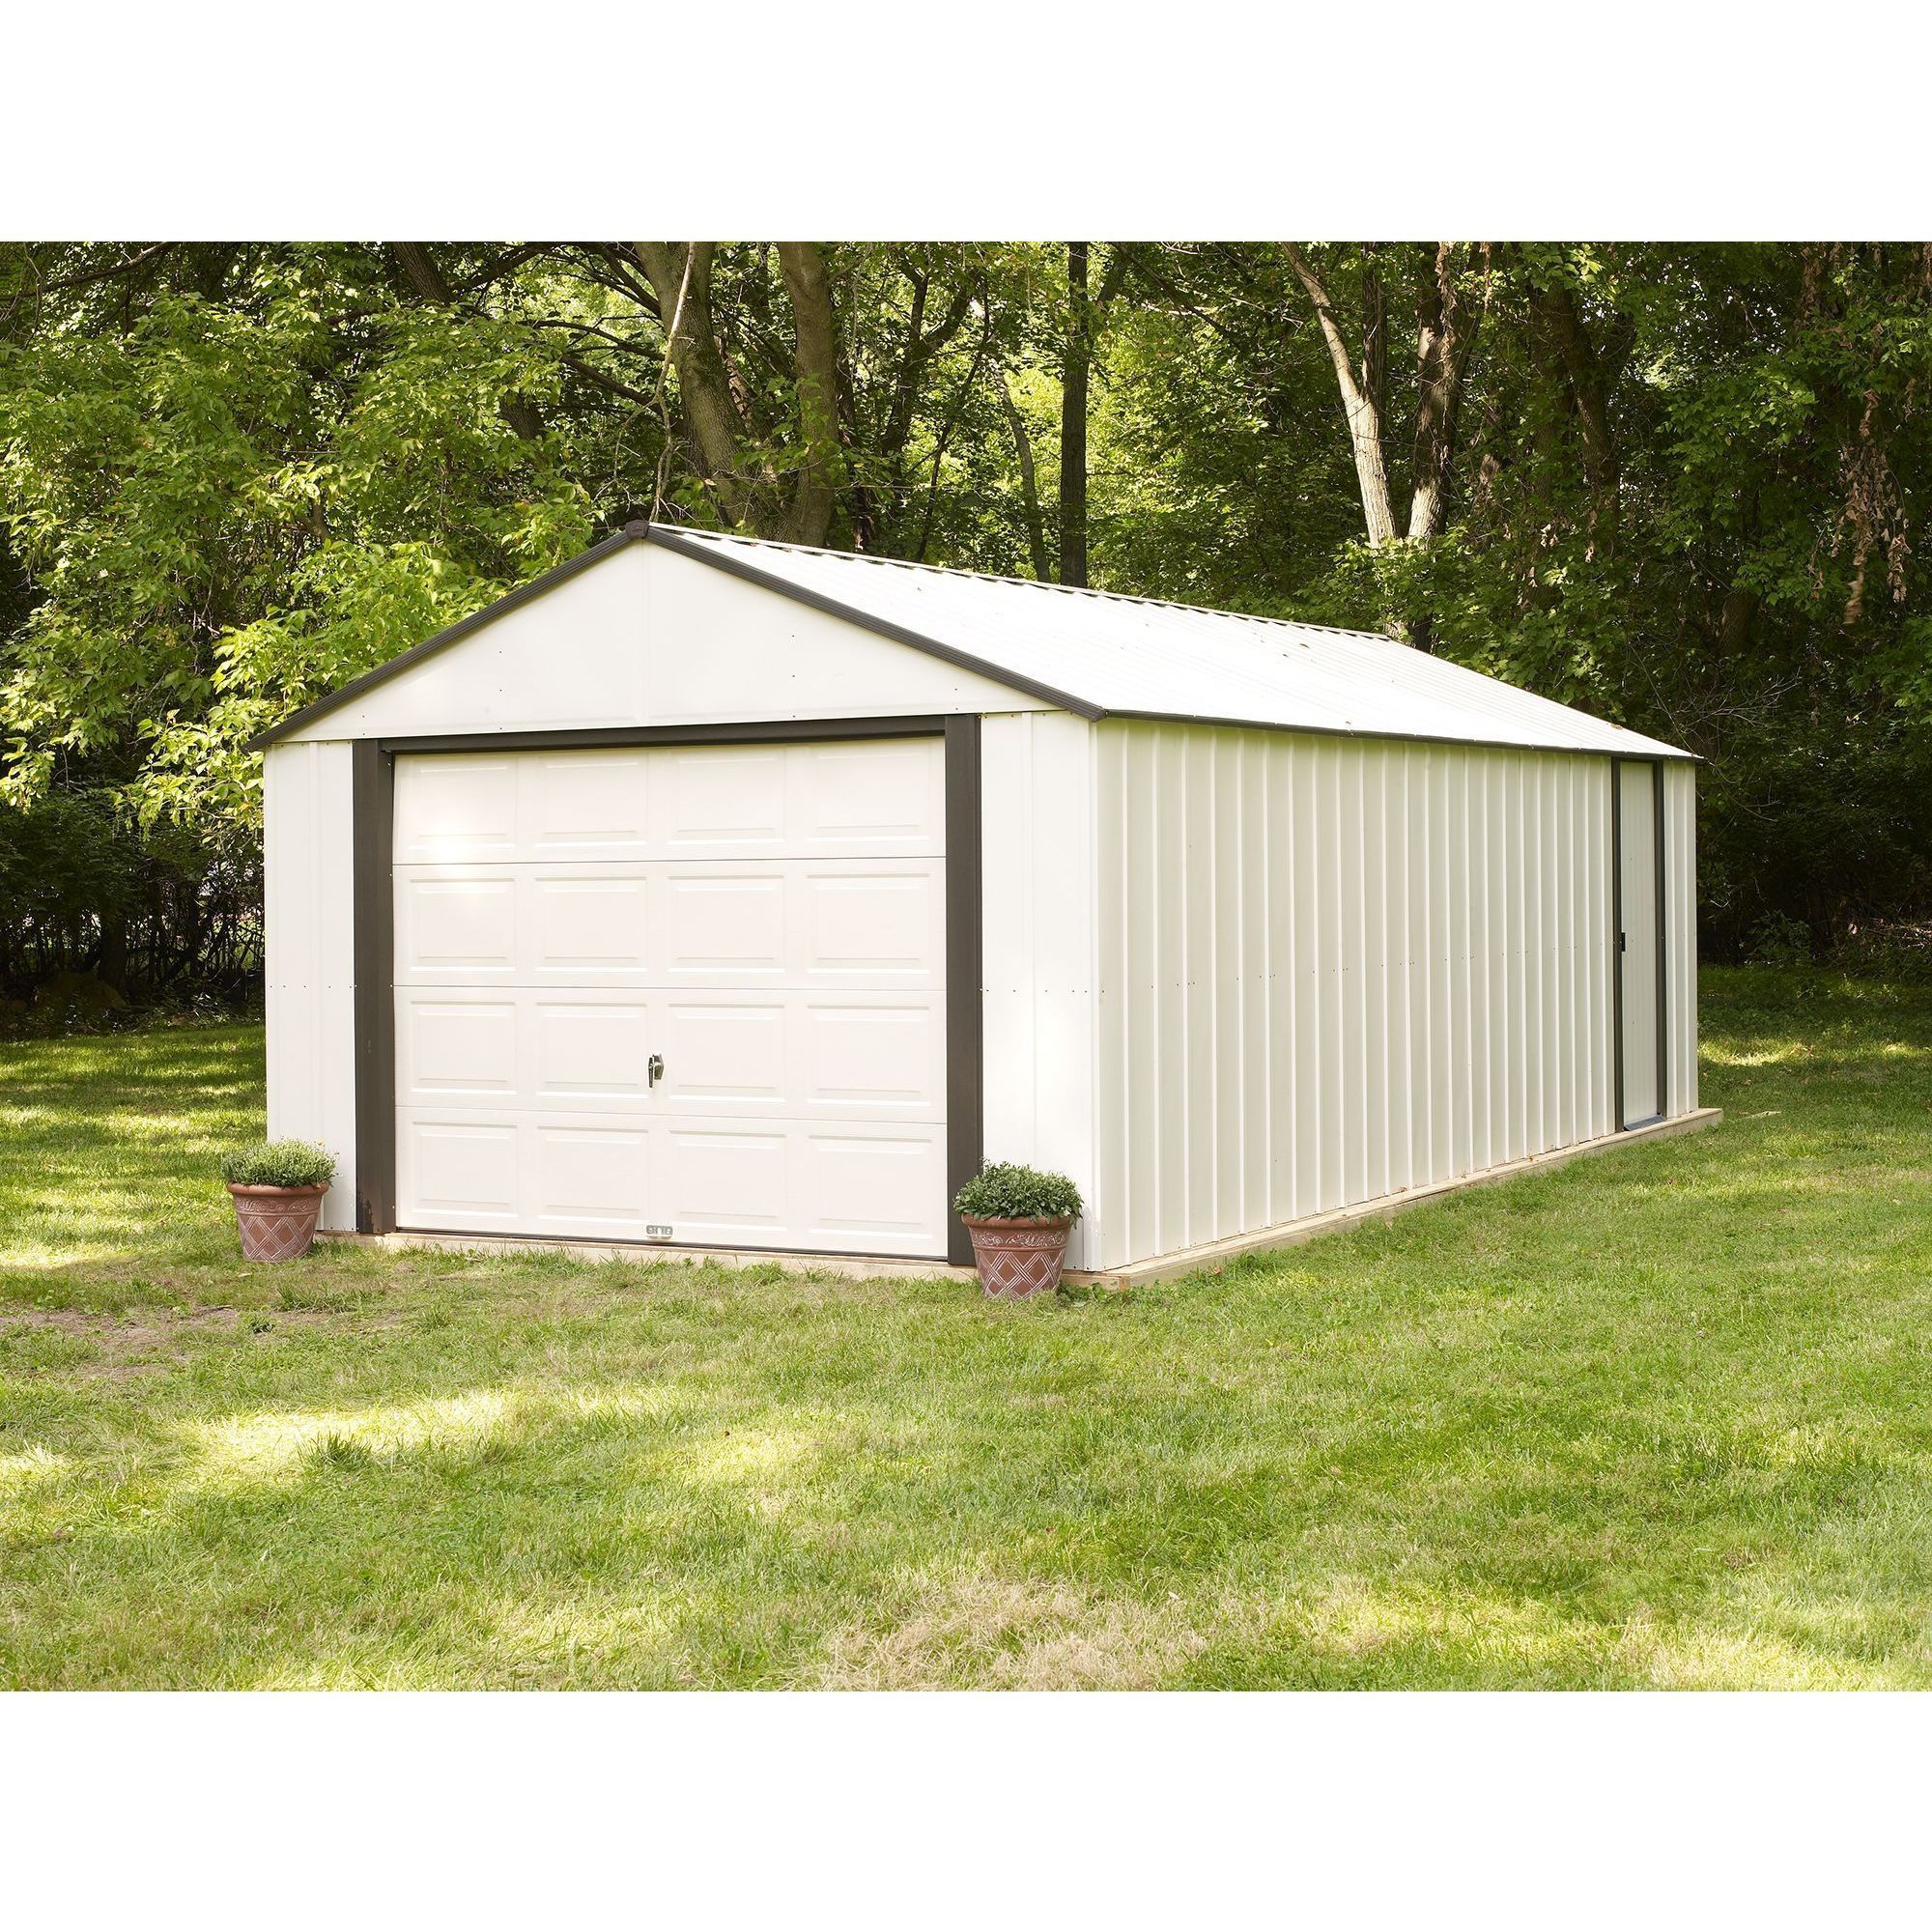 Arrow Murryhill Vinyl Storage Building 12 X 10 Arrow Vinyl Murryhill 12 X 10 Storage Building Bei With Images Metal Storage Sheds Building A Shed Garage Door Styles